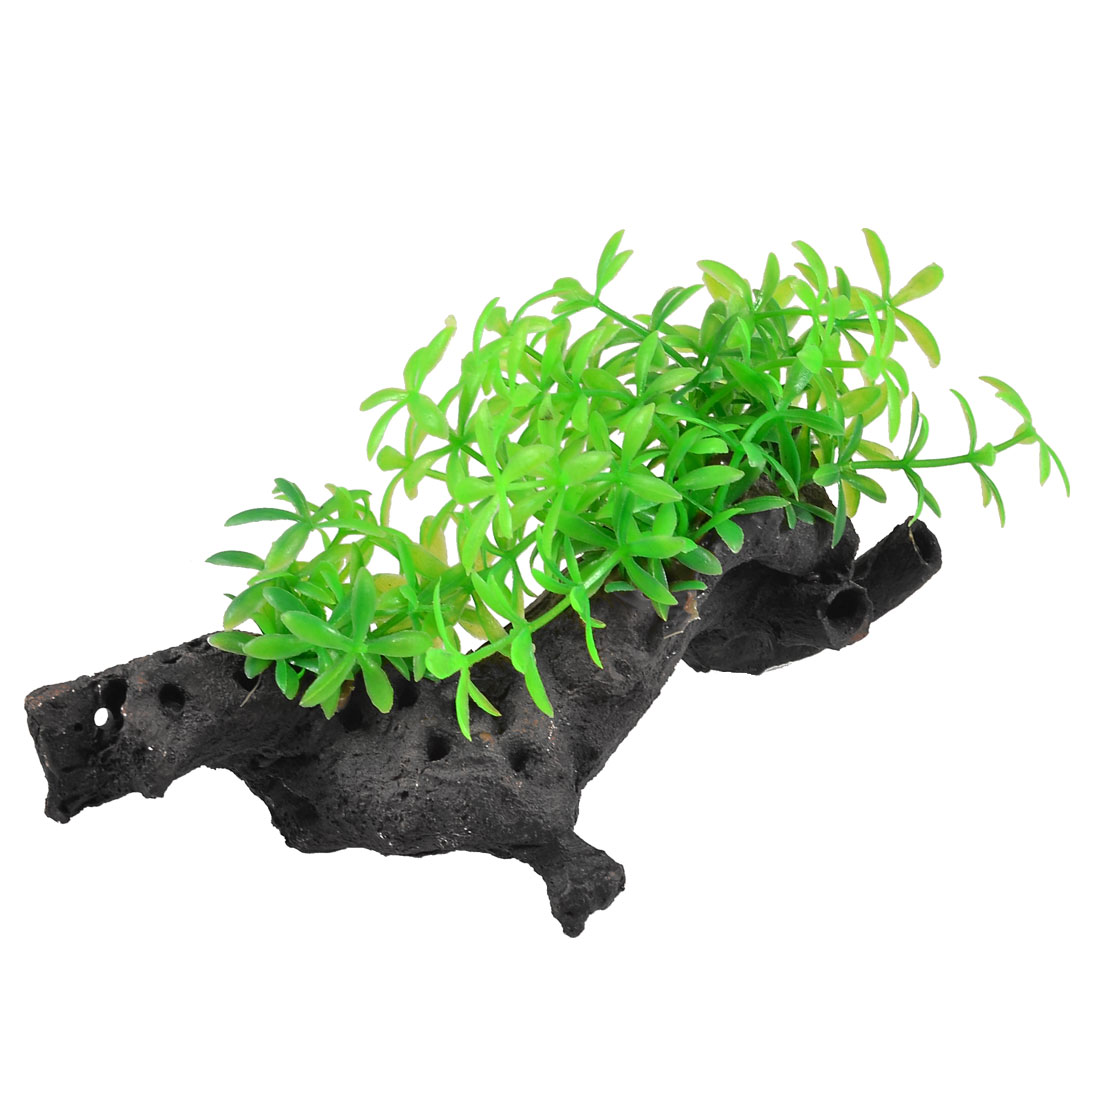 Fish Tank Ornament Aquarium Plastic Plant Decoration 3.5""